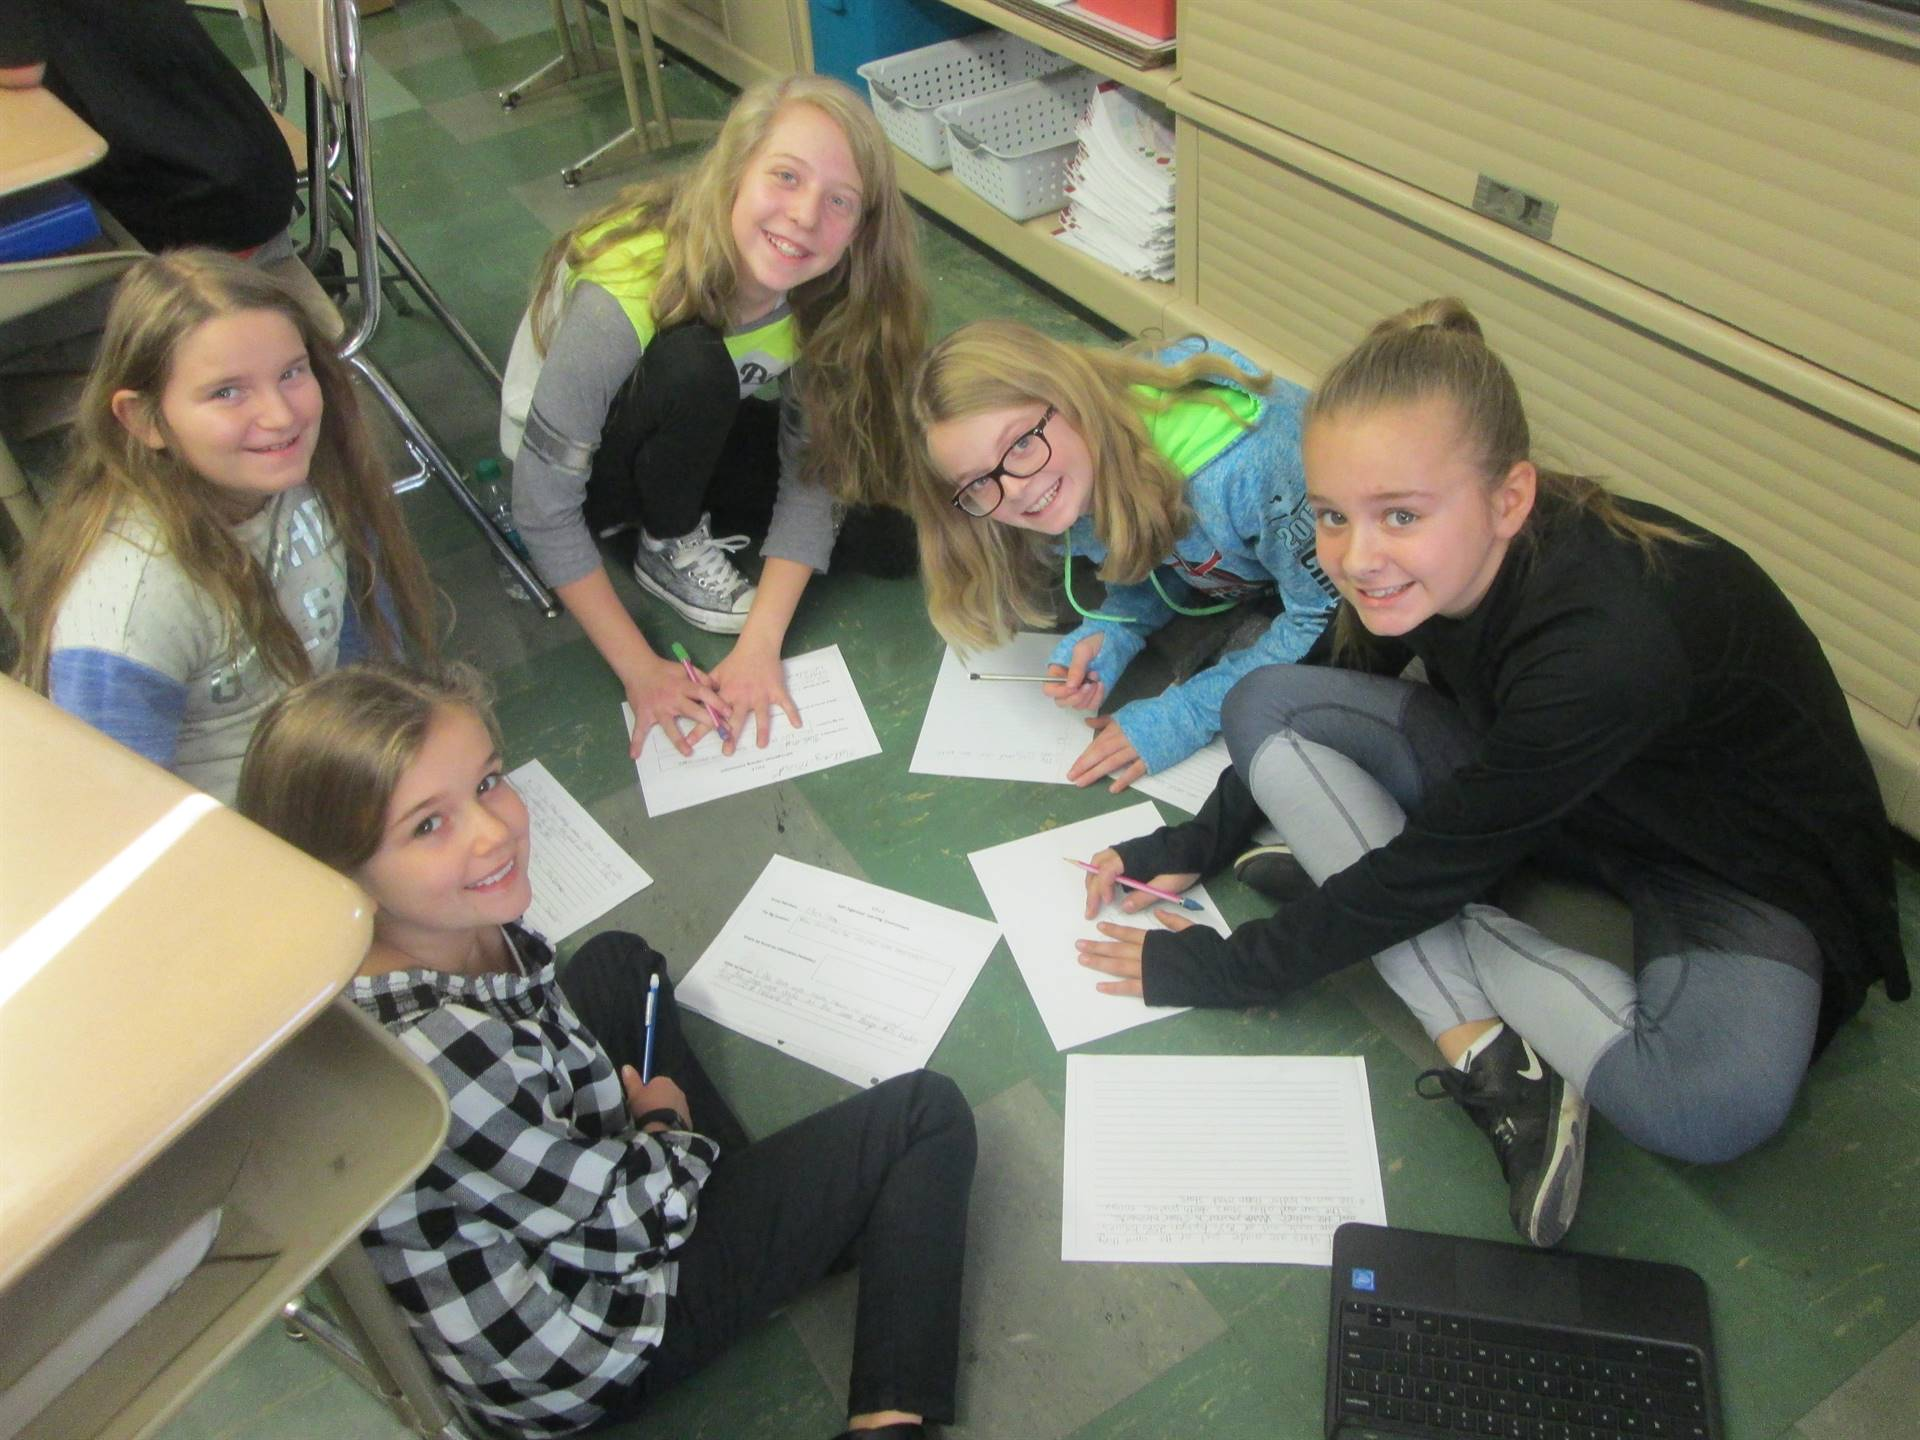 5th Graders from Mrs. Lockwood's Class Doing a  Self Organized Learning Environment Activity